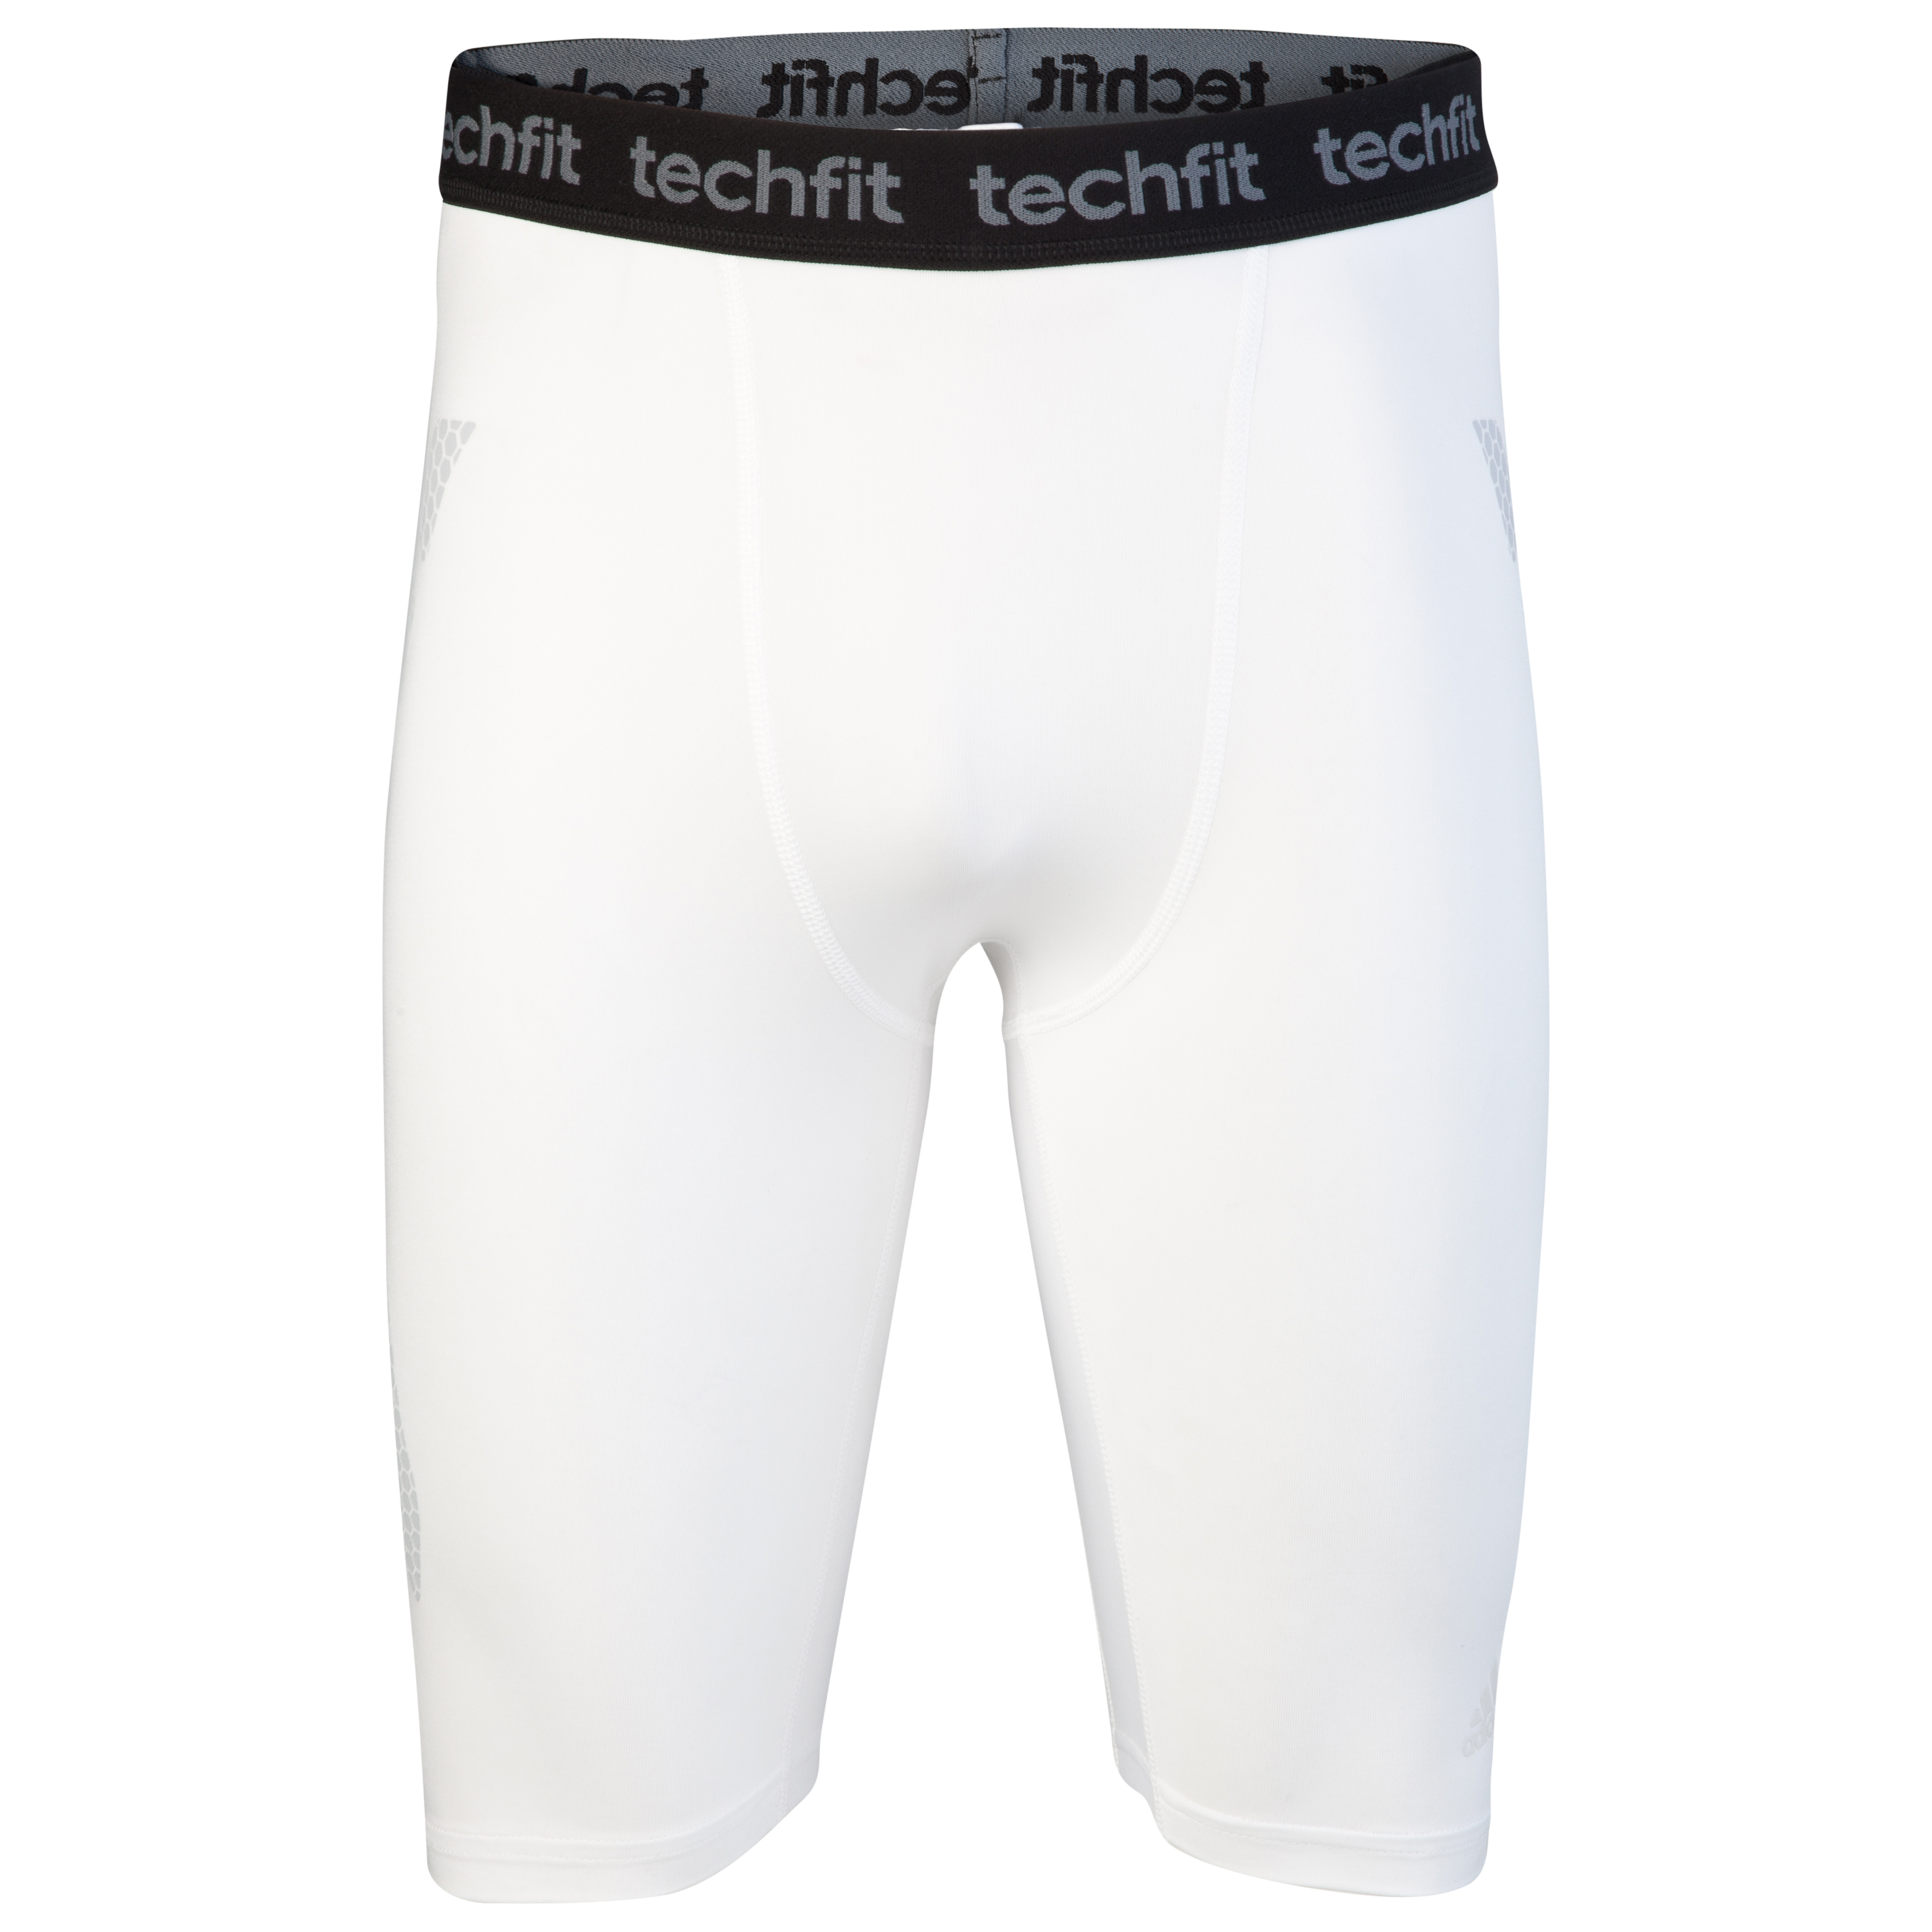 Adidas TechFit Preperation Short - White